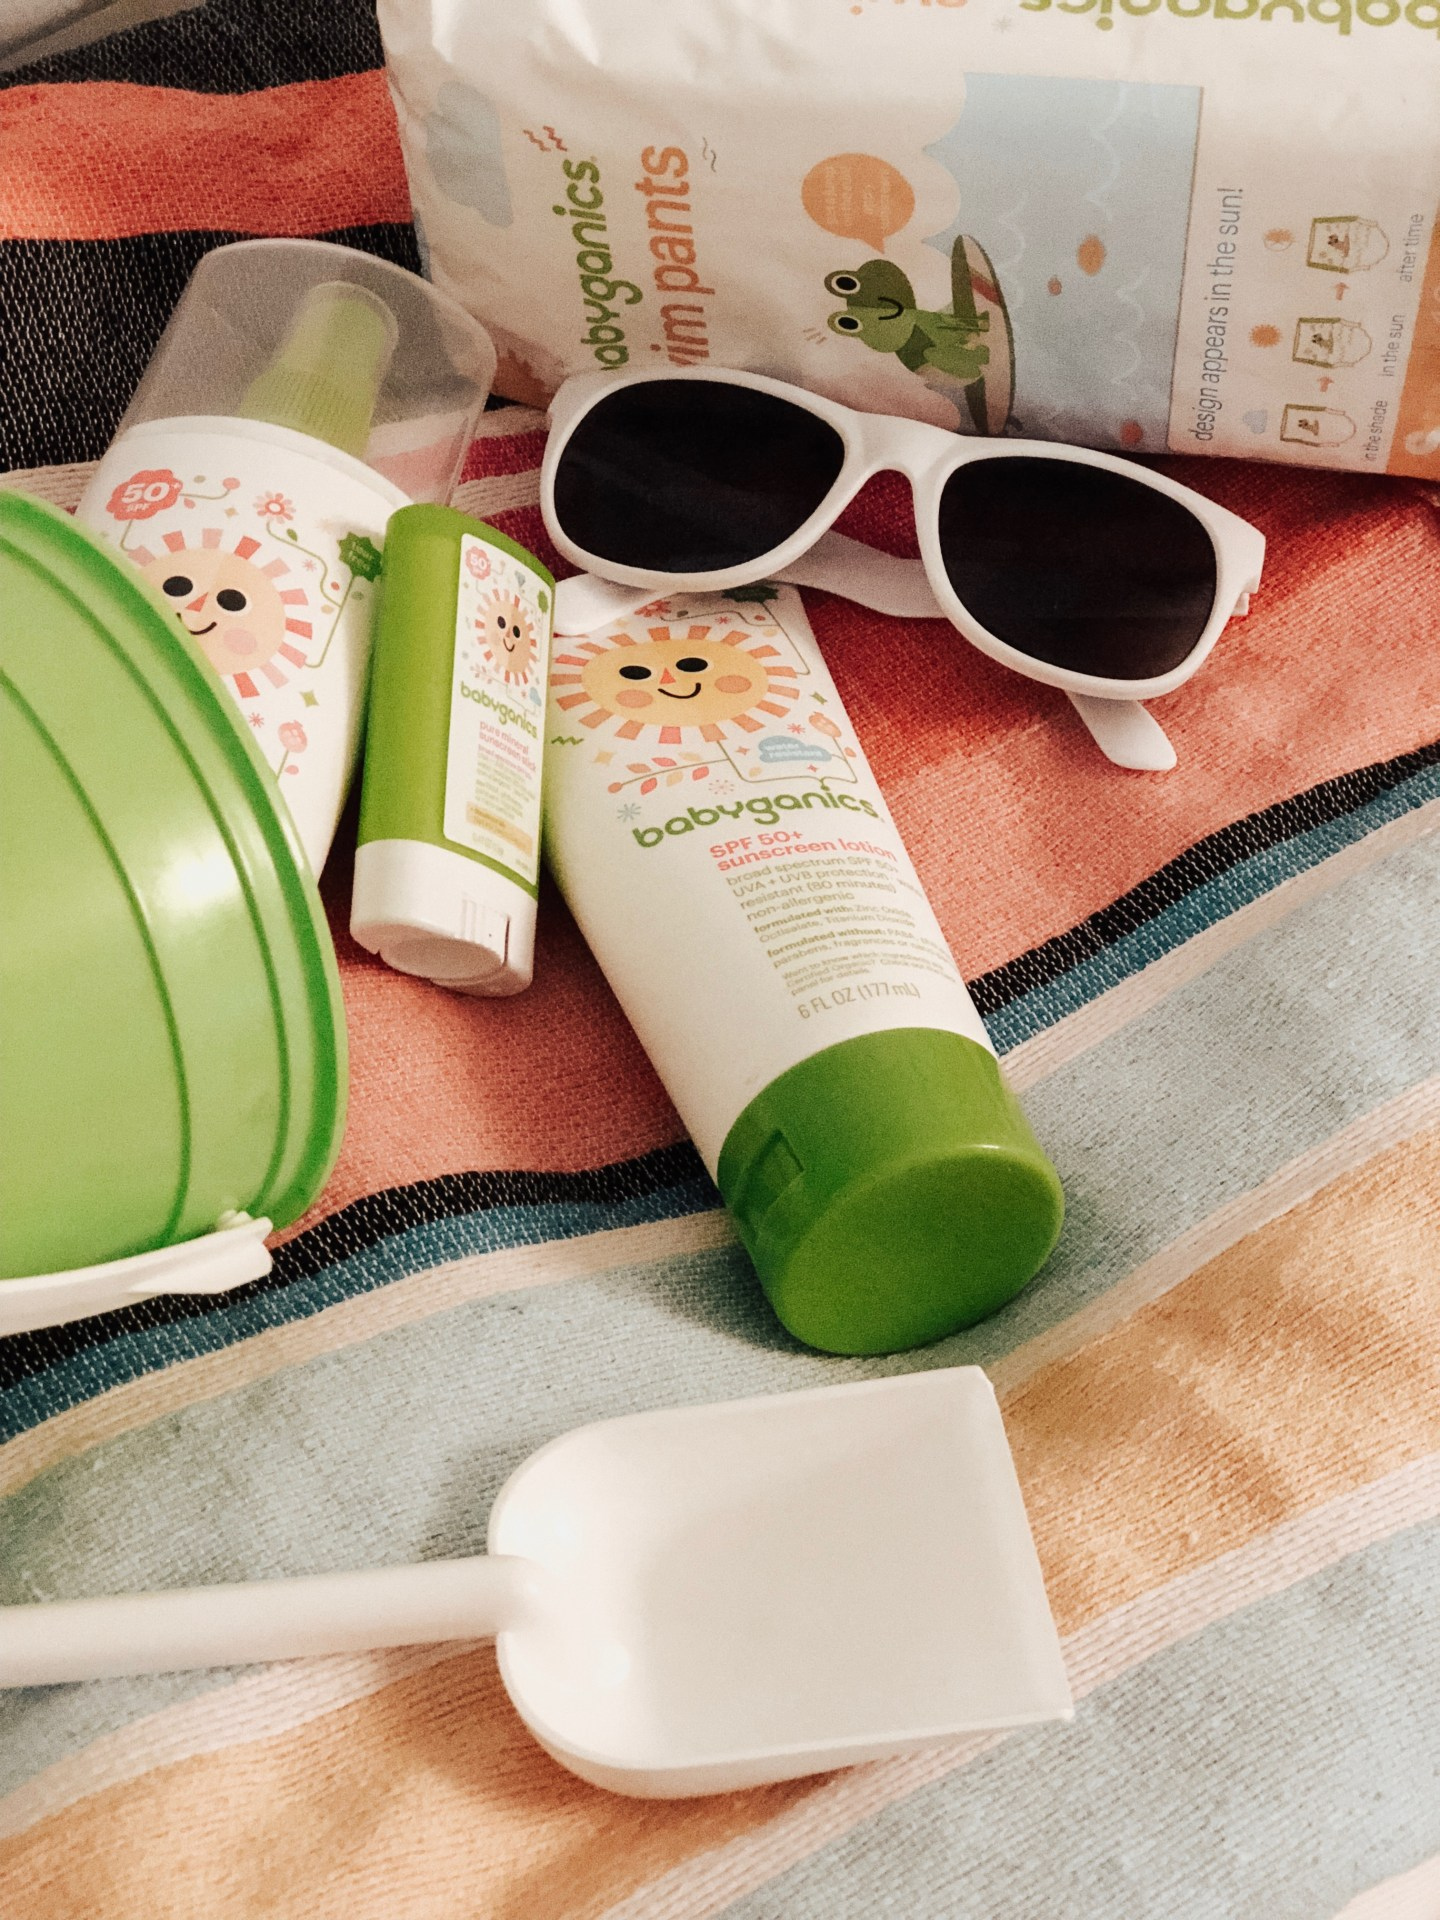 HEALTH: BEST KID & BABY SUN SAFETY TIPS featured by popular San Francisco lifestyle blogger Sylie In The Sky